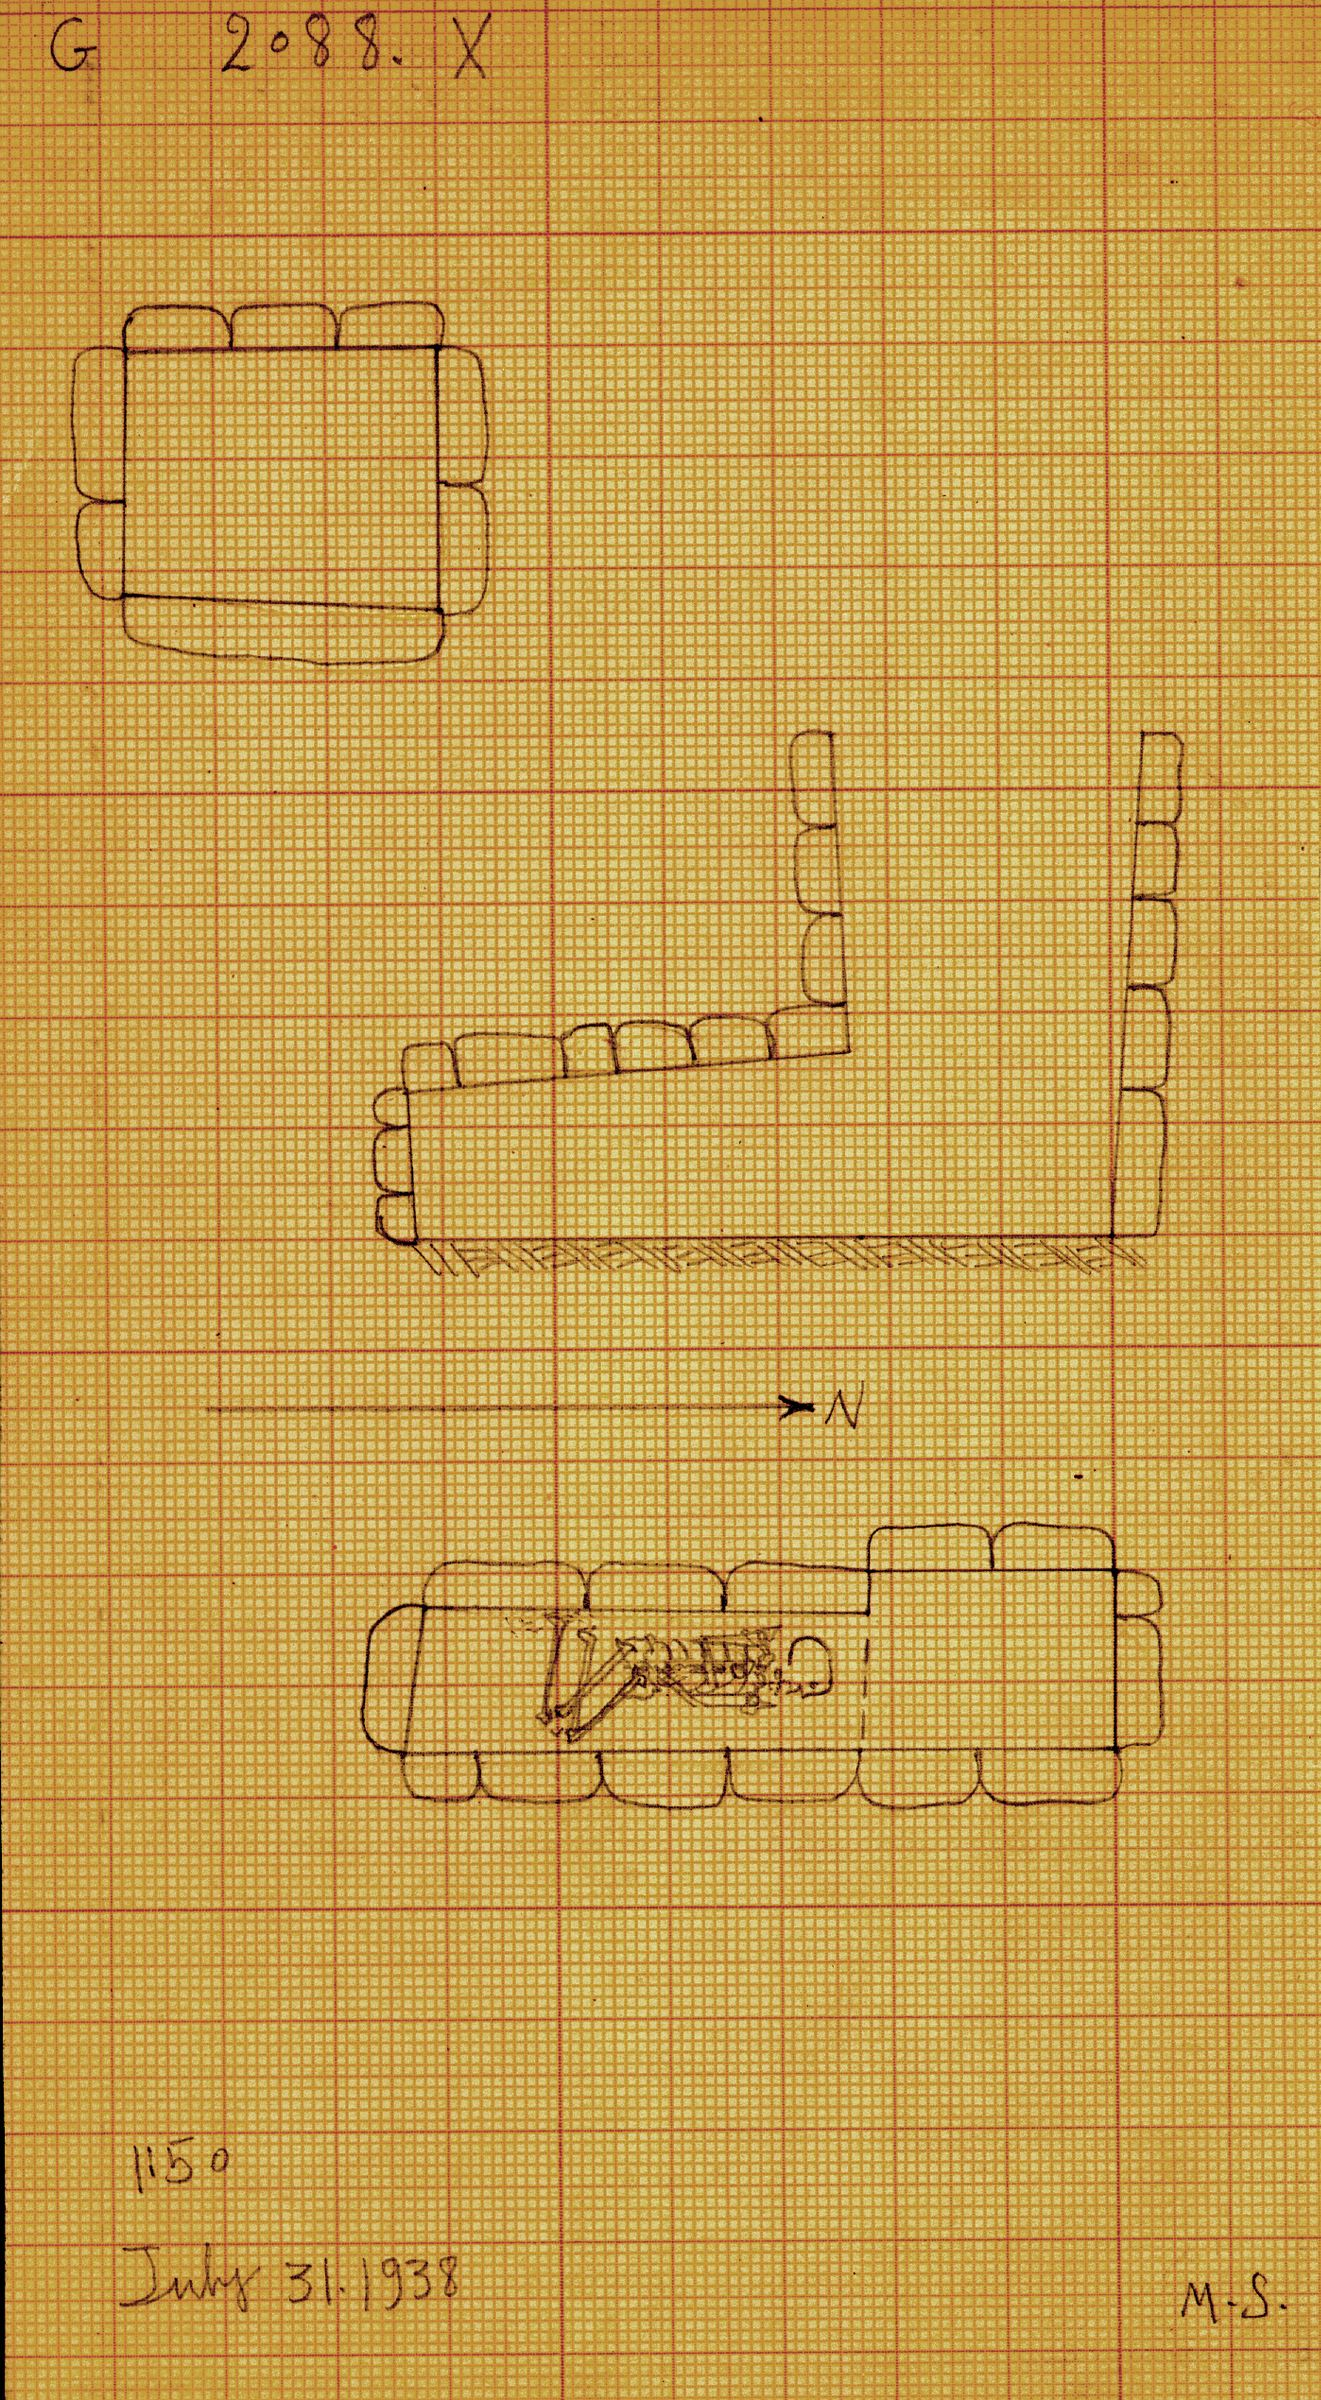 Maps and plans: G 2088, Shaft X